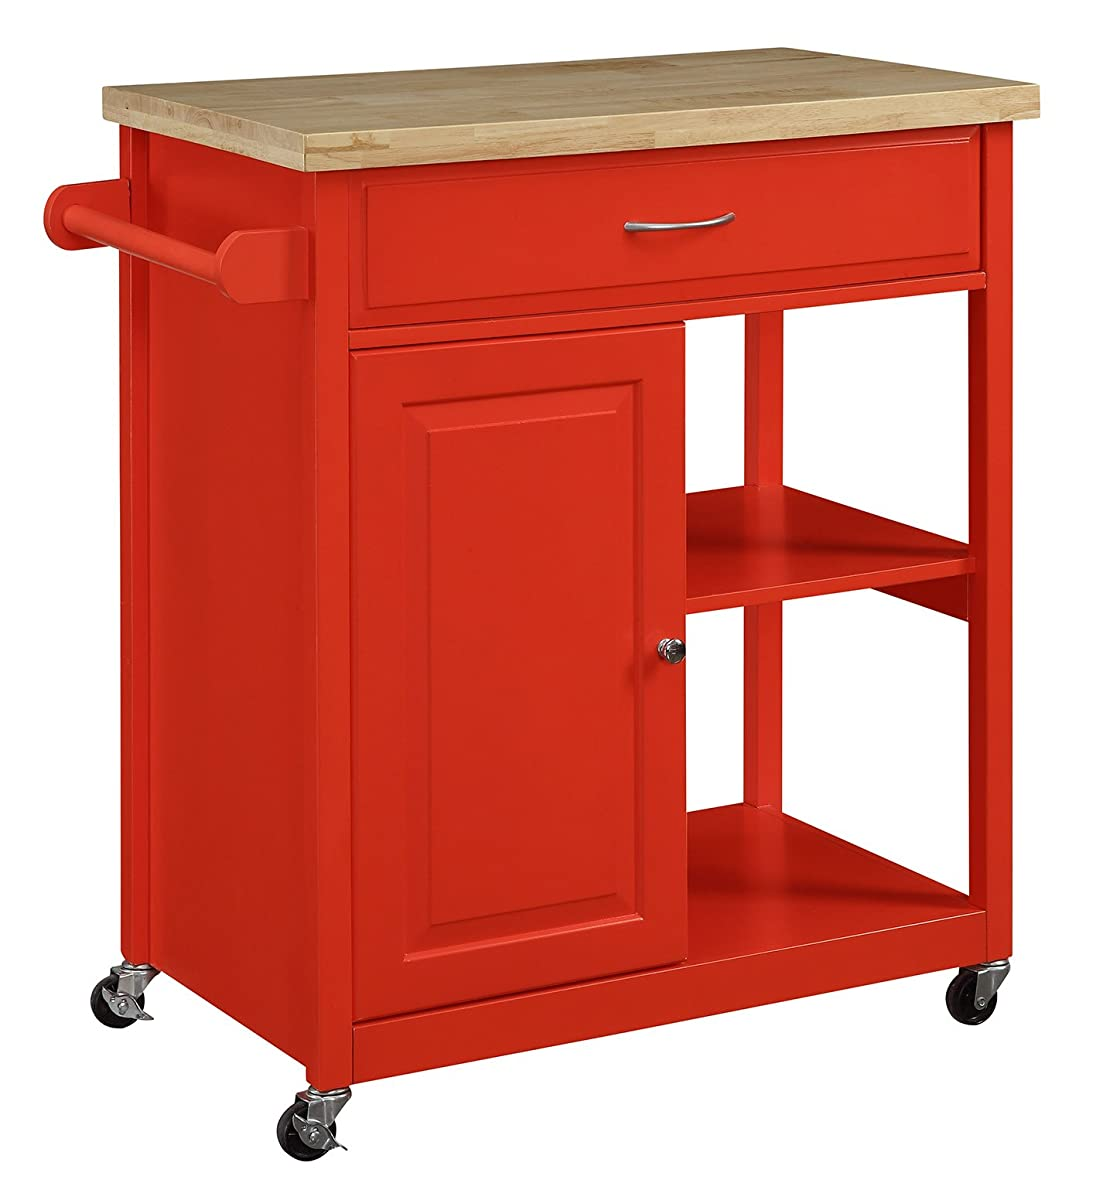 Oliver and Smith - Nashville Collection - Mobile Kitchen Island Cart on Wheels - Red - Natural ...